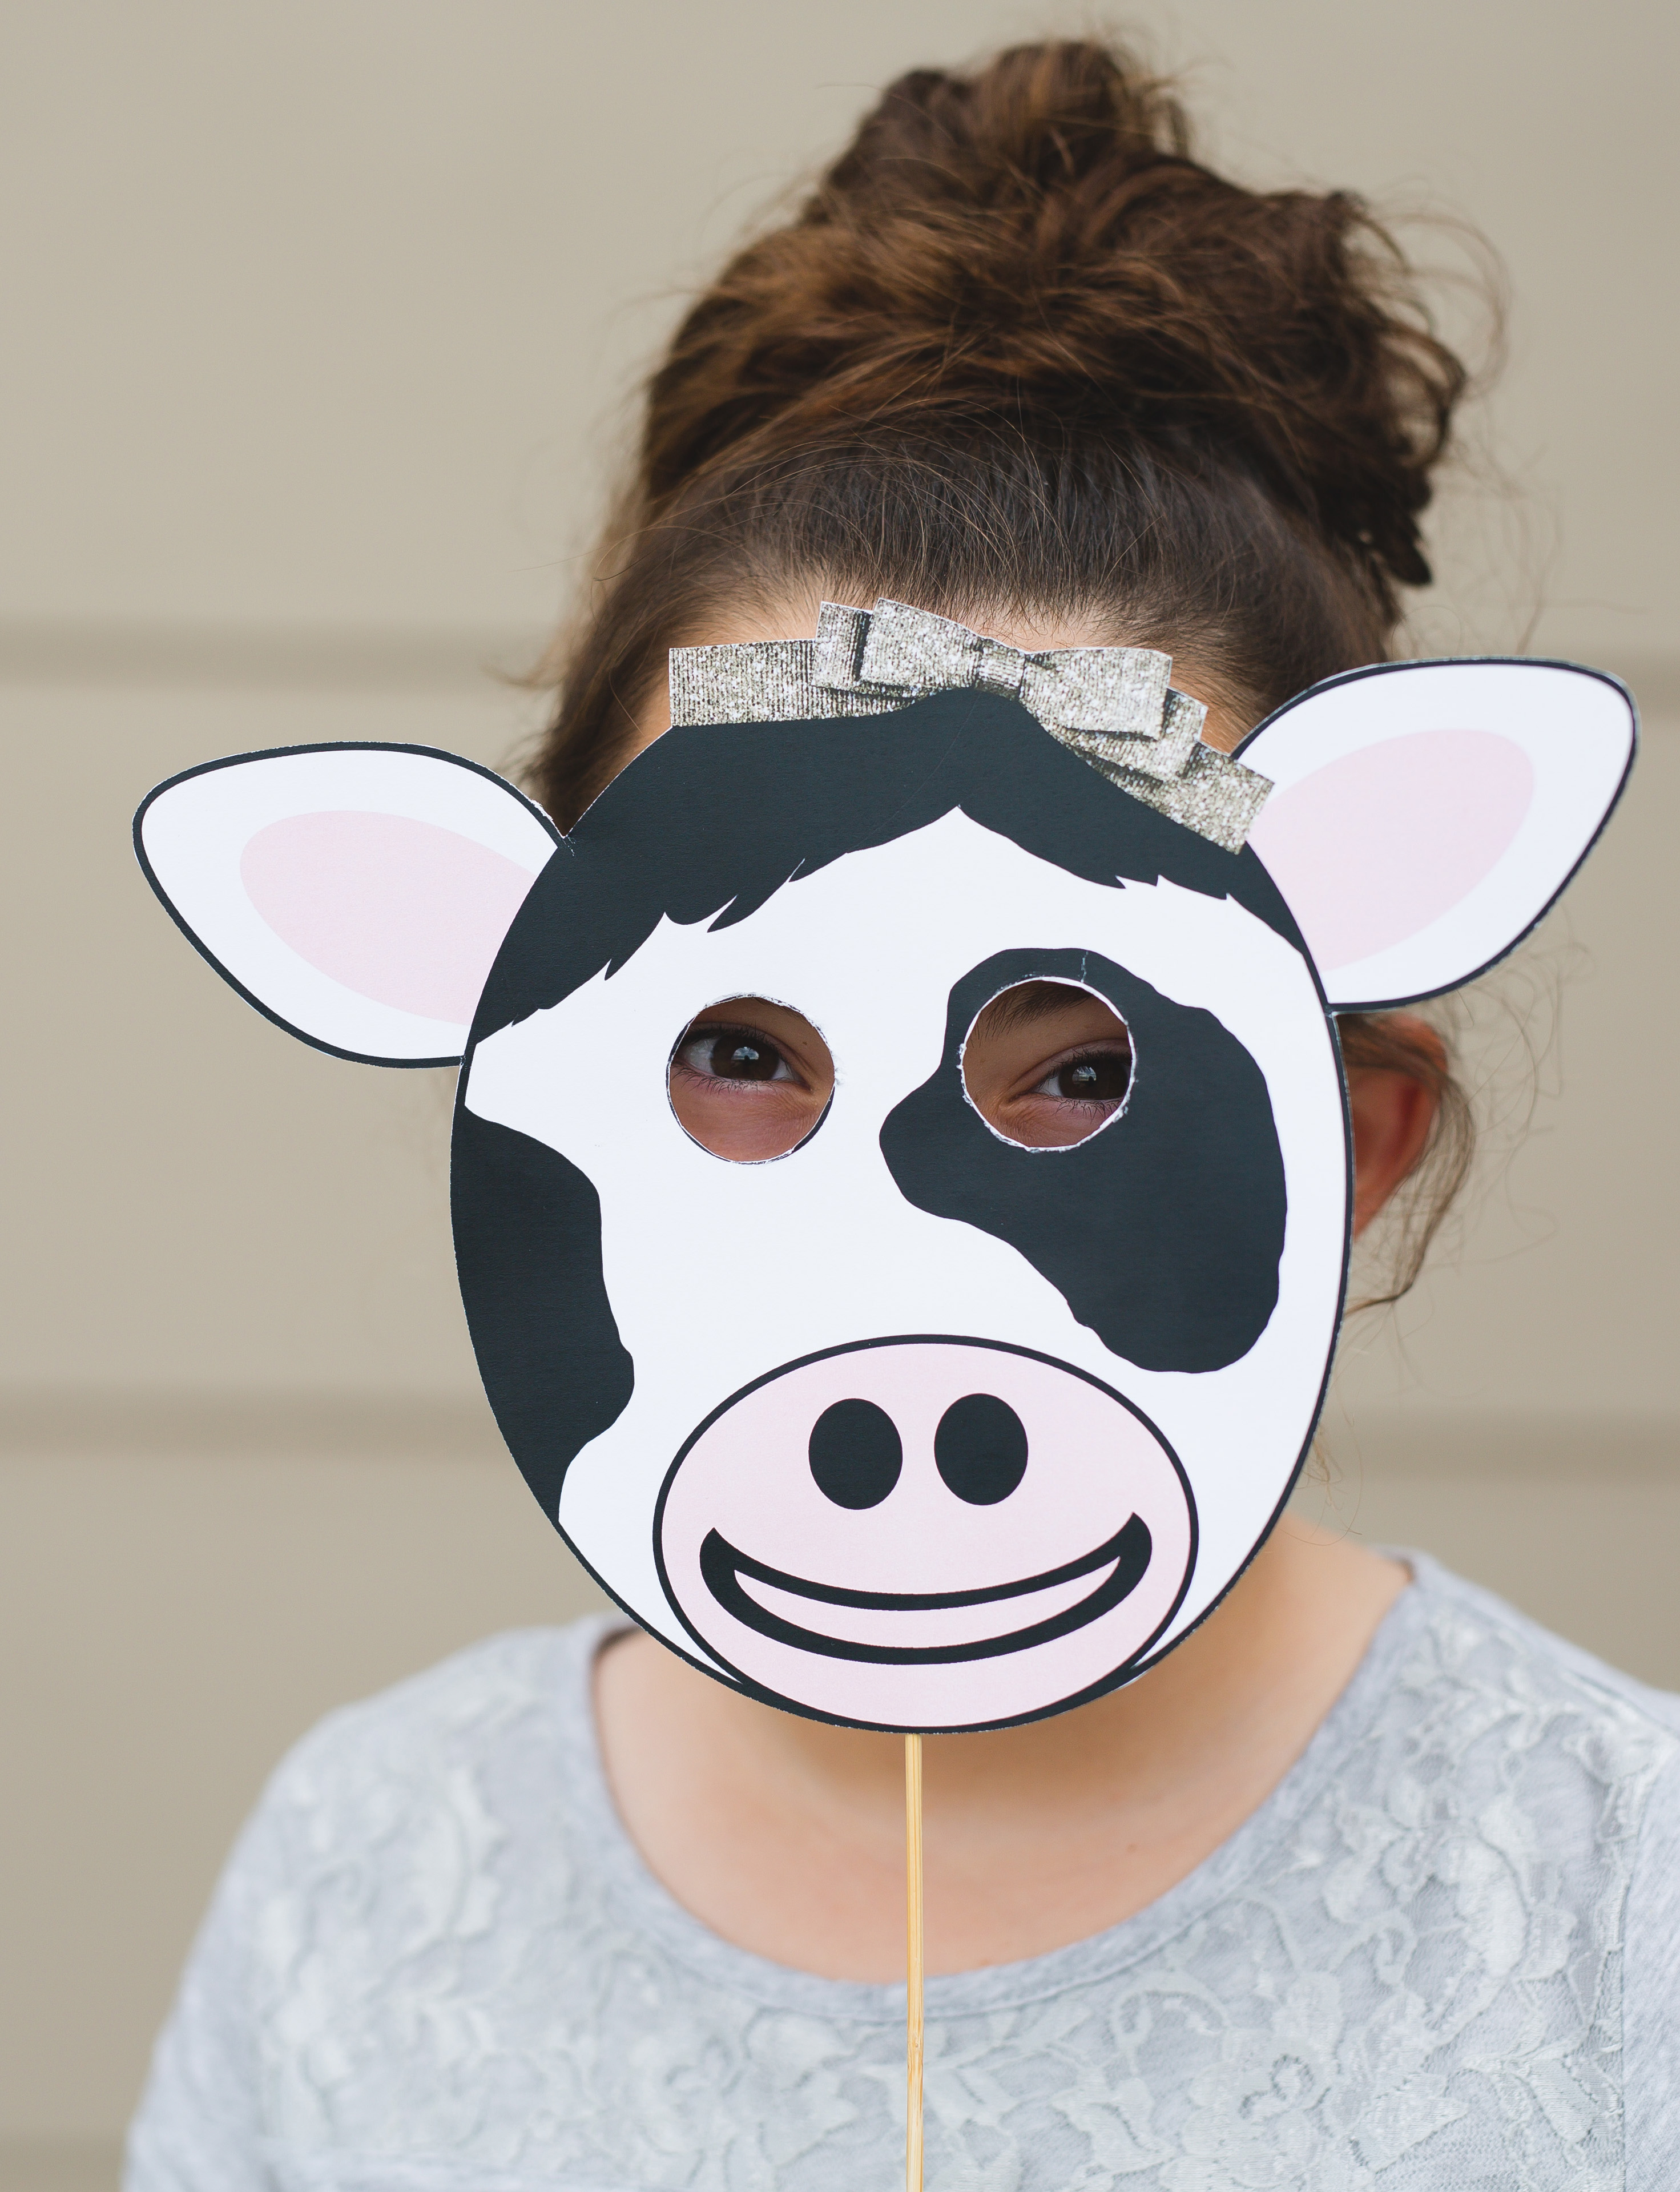 It's just an image of Free Printable Cow Mask in farm animal